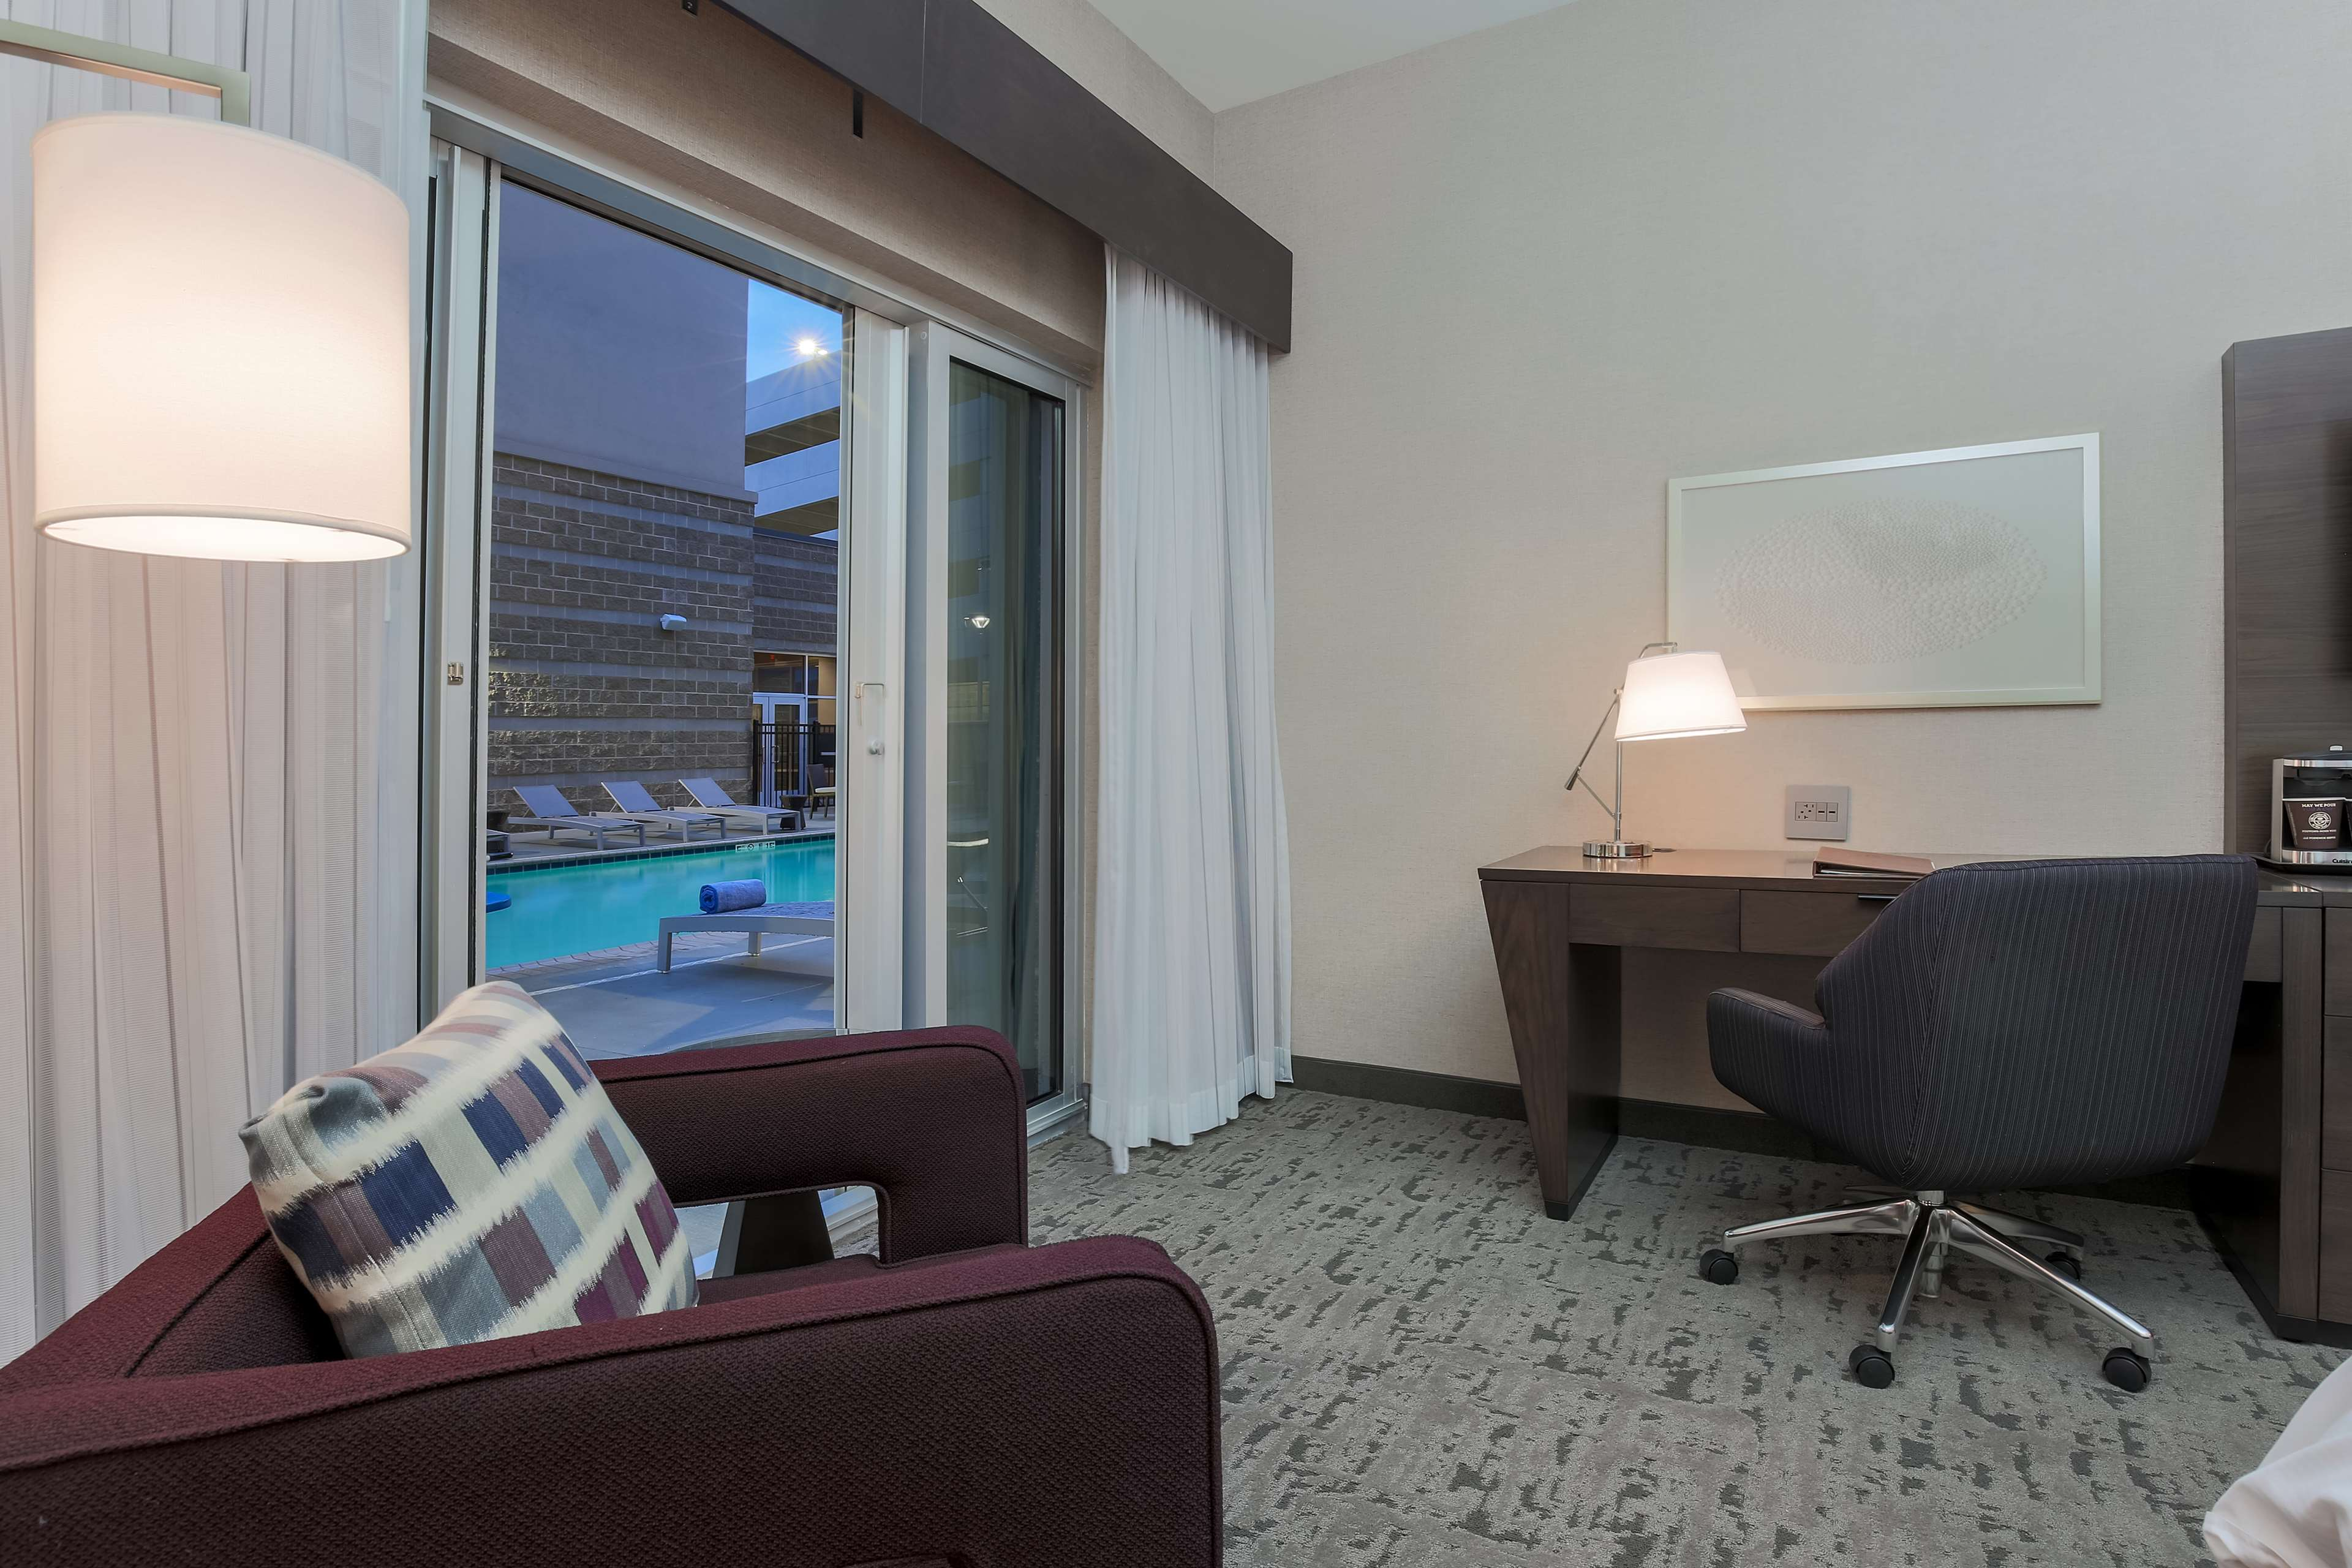 DoubleTree by Hilton Evansville image 39